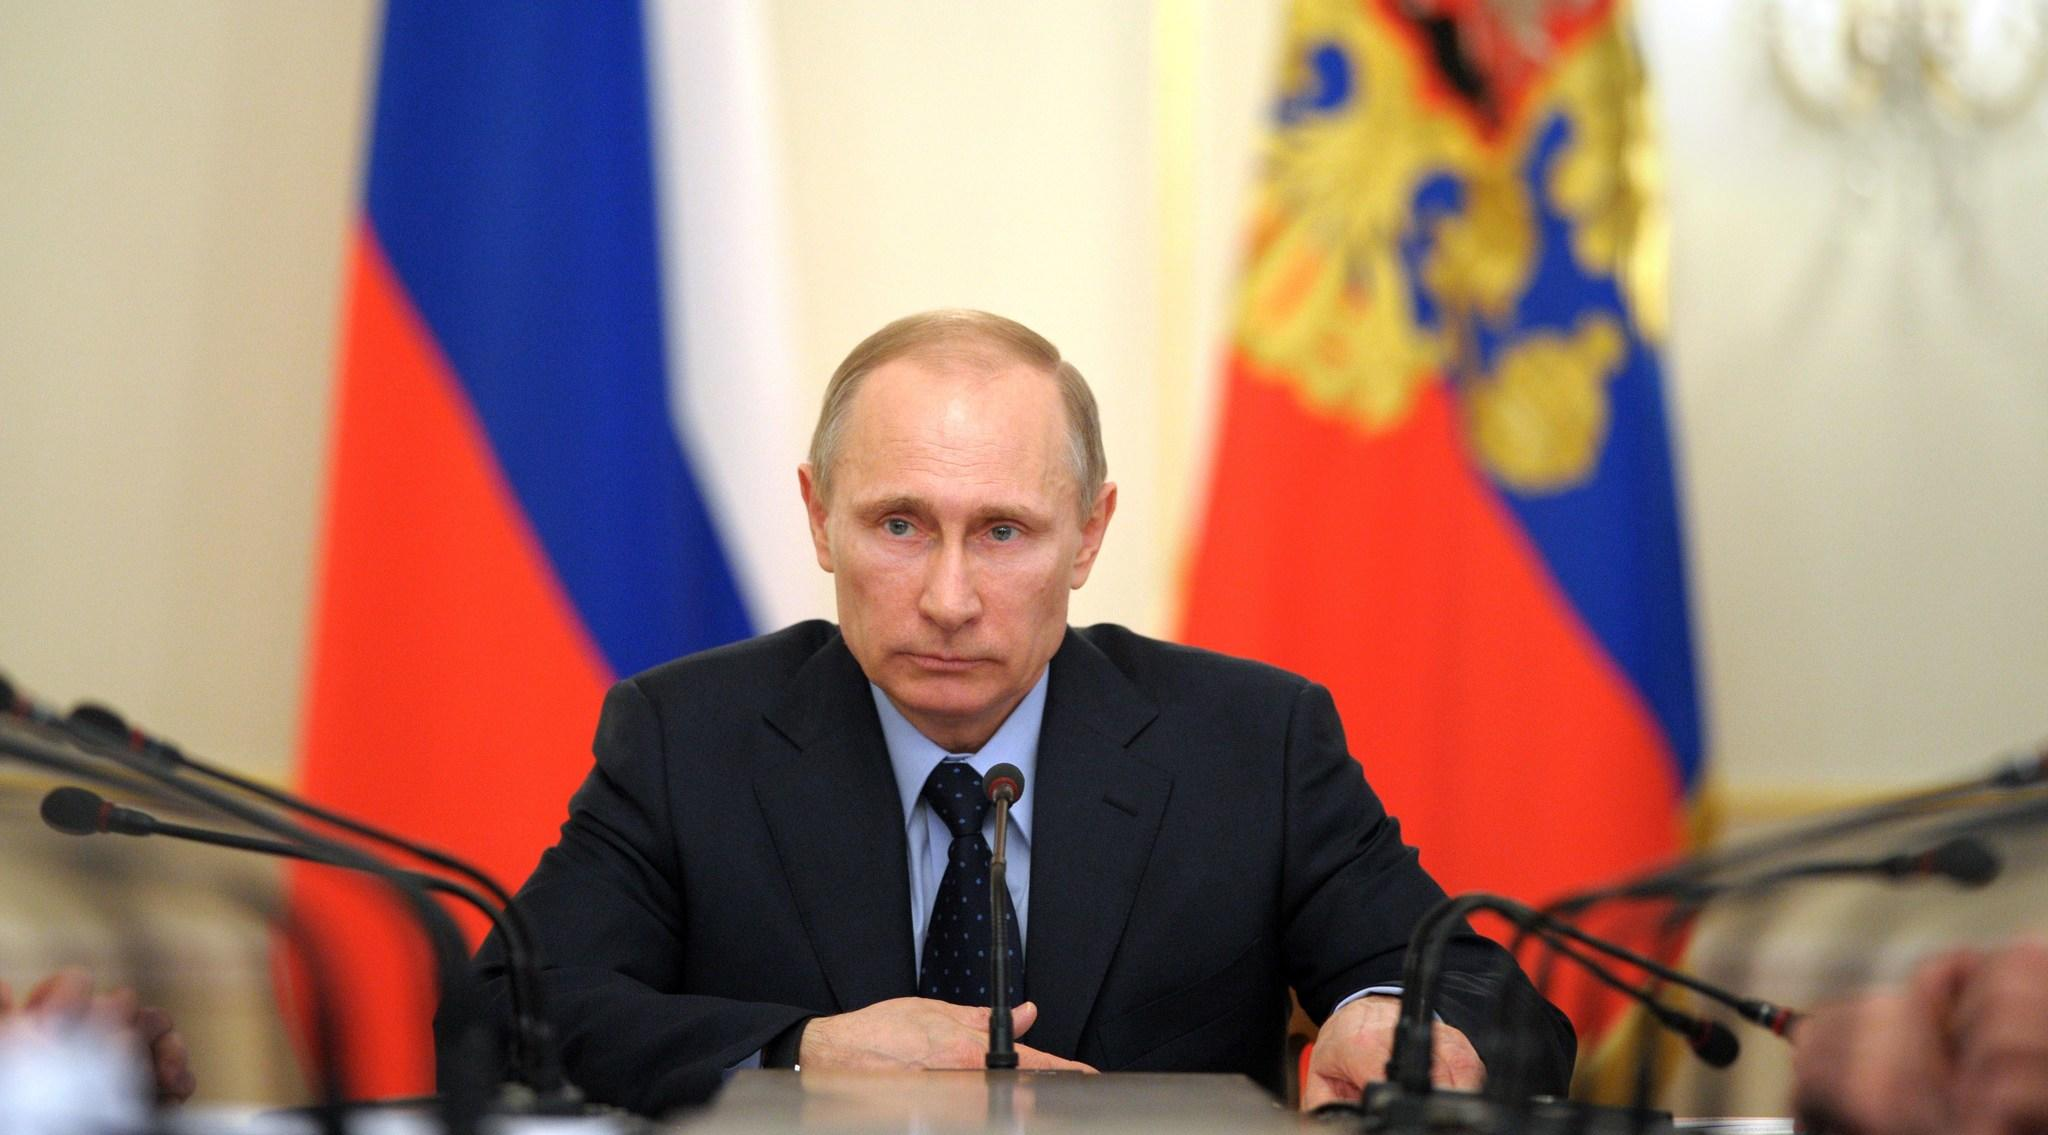 Russia's President Vladimir Putin (C) chairs a government meeting in his Novo-Ogaryovo residence, outside Moscow.